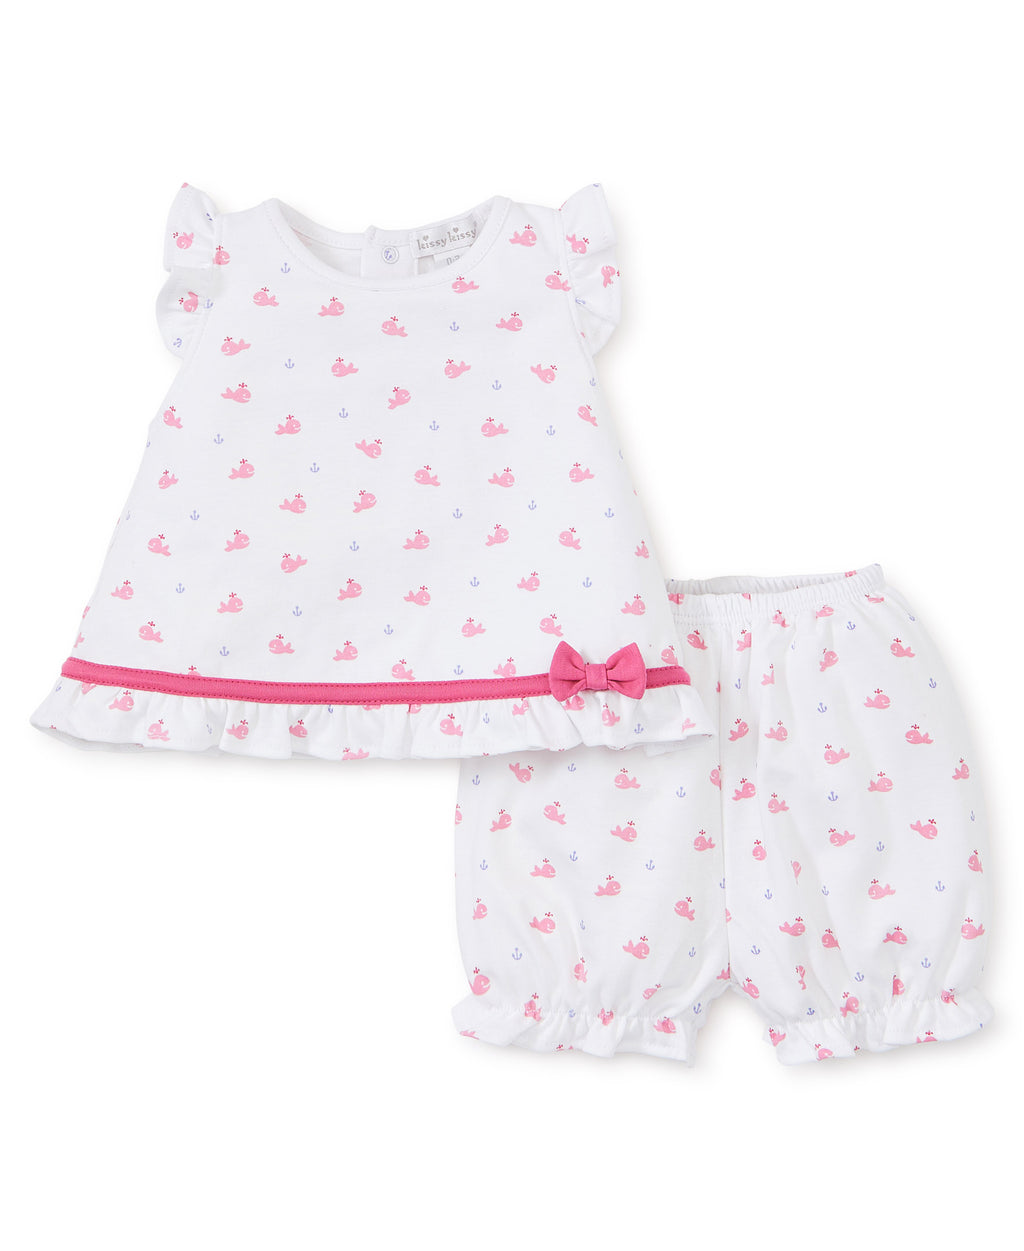 Whales Fuchsia Sunsuit Set